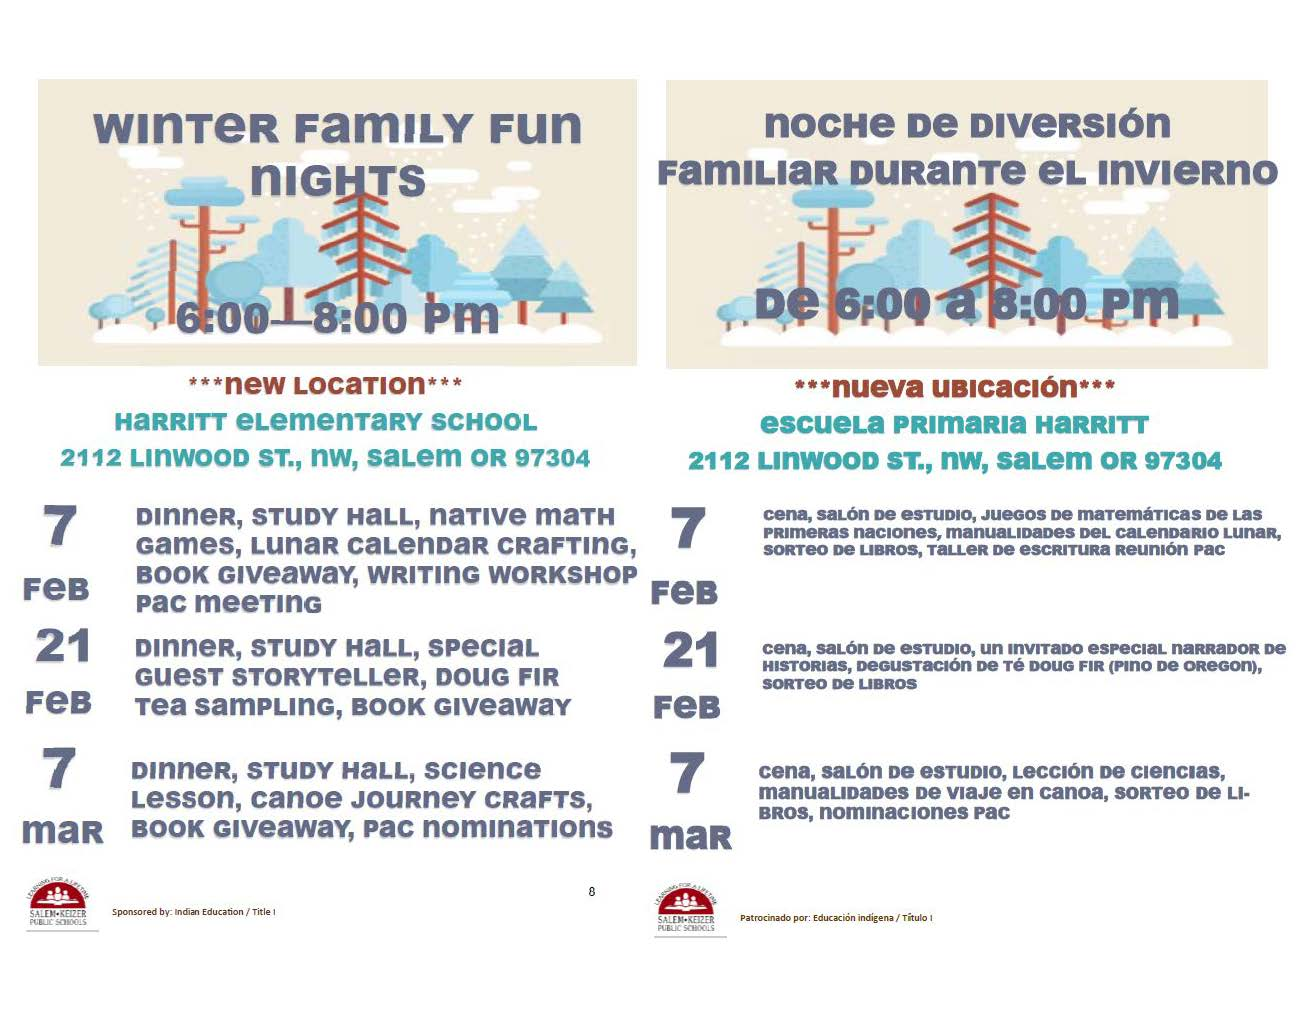 2019 Winter Family Nights/ Noches Familiar de Invierno 2019